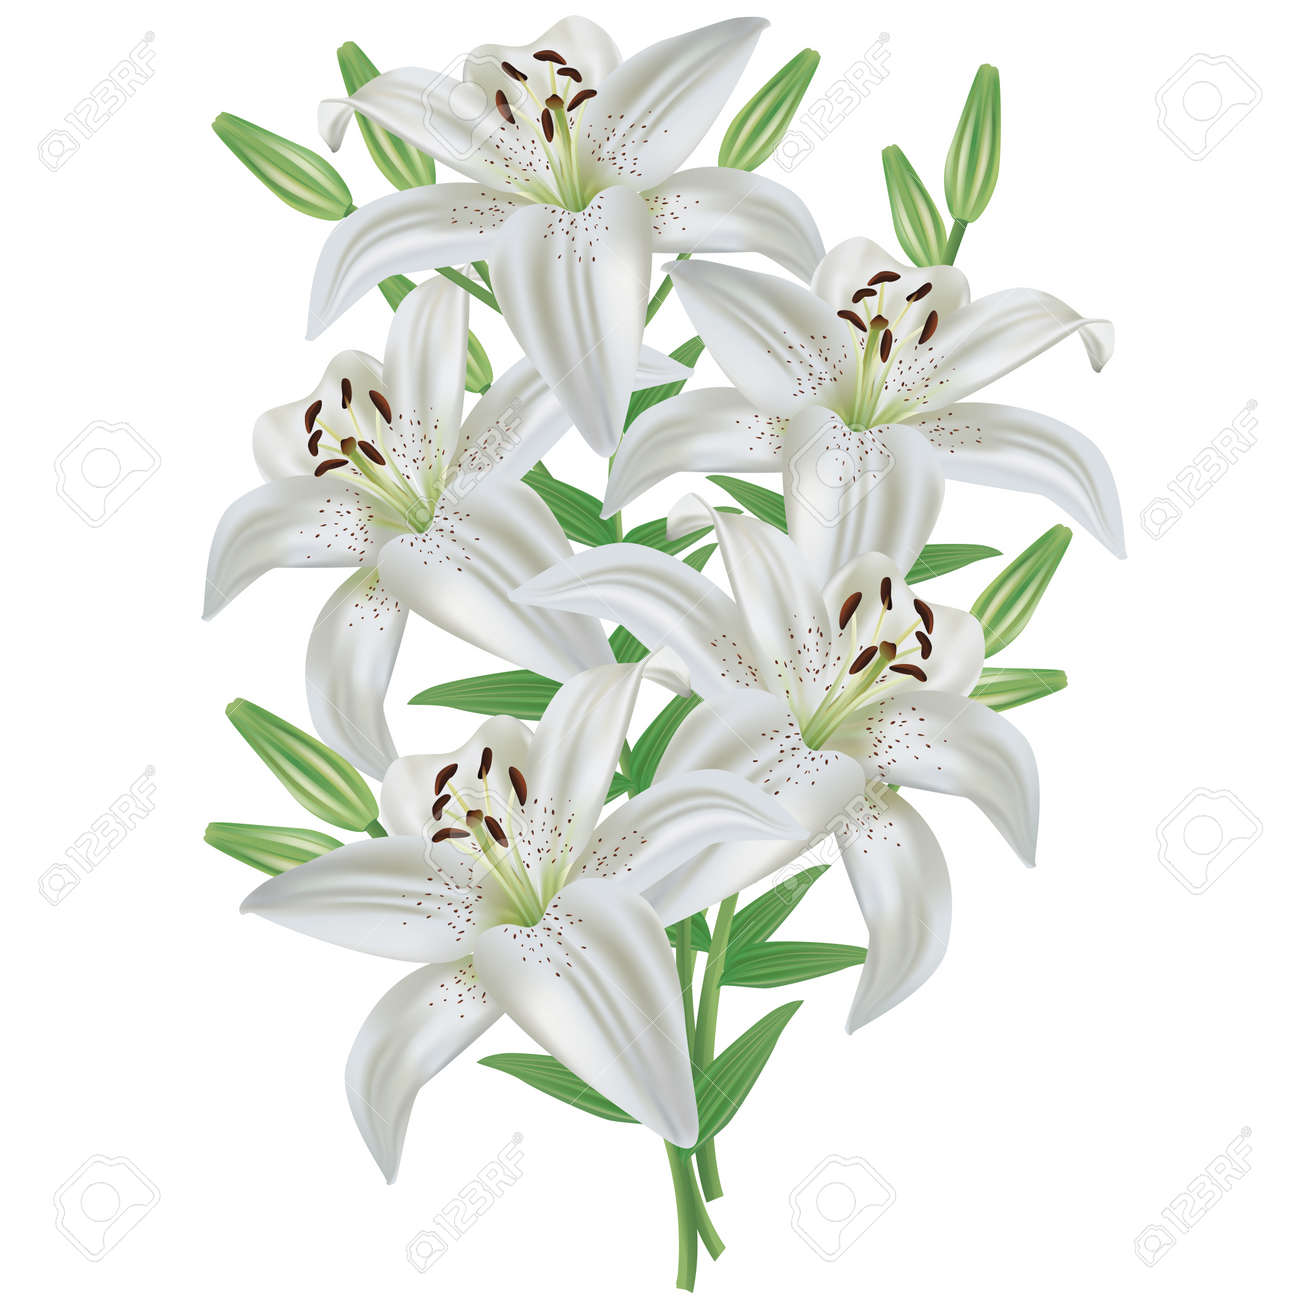 White Lily Flower Bouquet Realistic Isolated On White Background